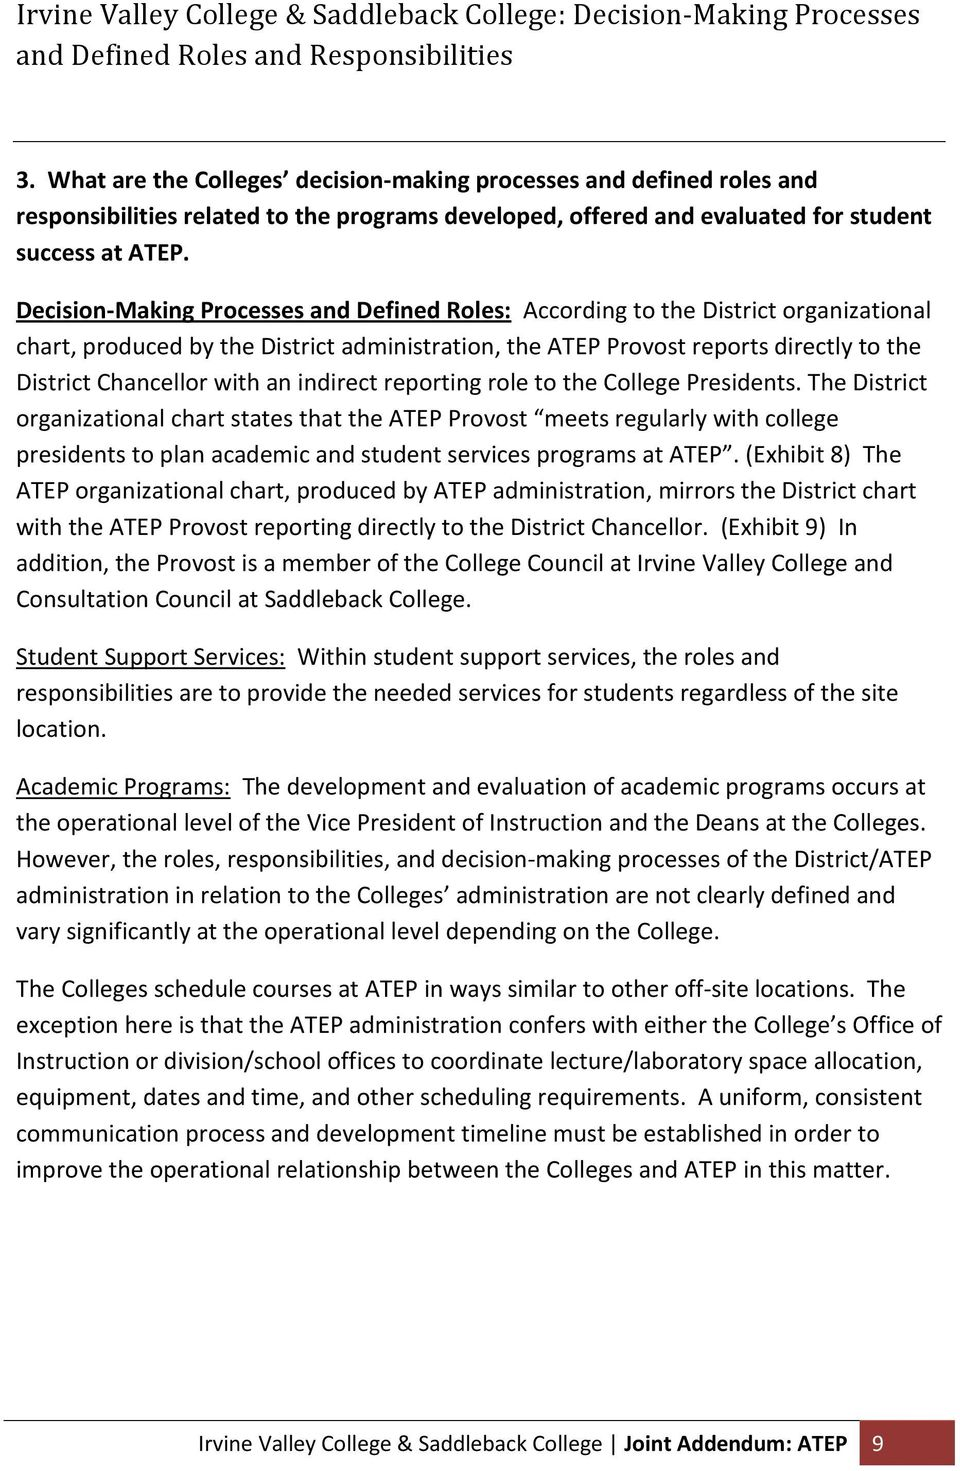 Decision-Making Processes and Defined Roles: According to the District organizational chart, produced by the District administration, the ATEP Provost reports directly to the District Chancellor with